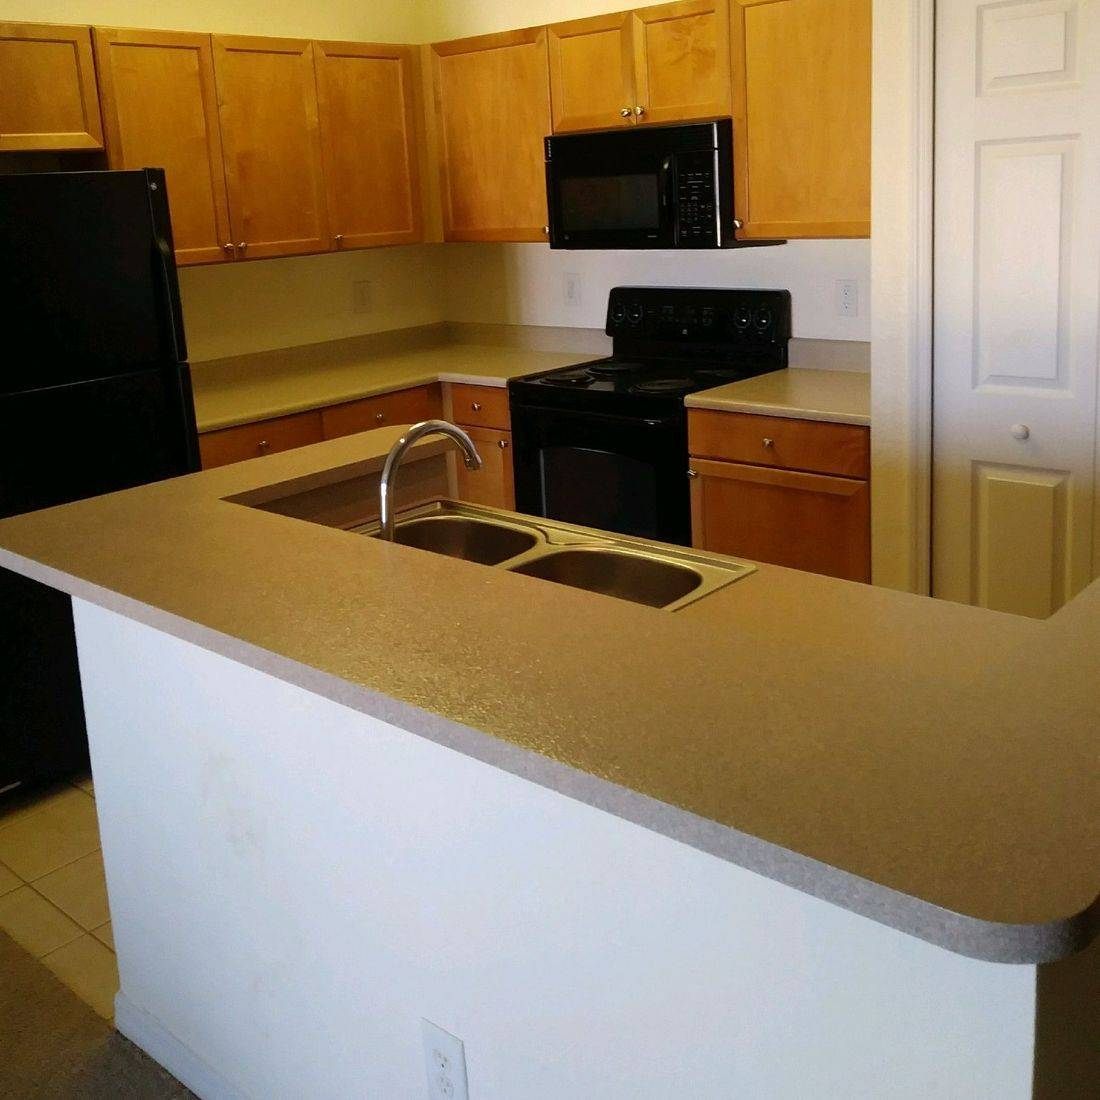 Kitchen After Refinished Countertop